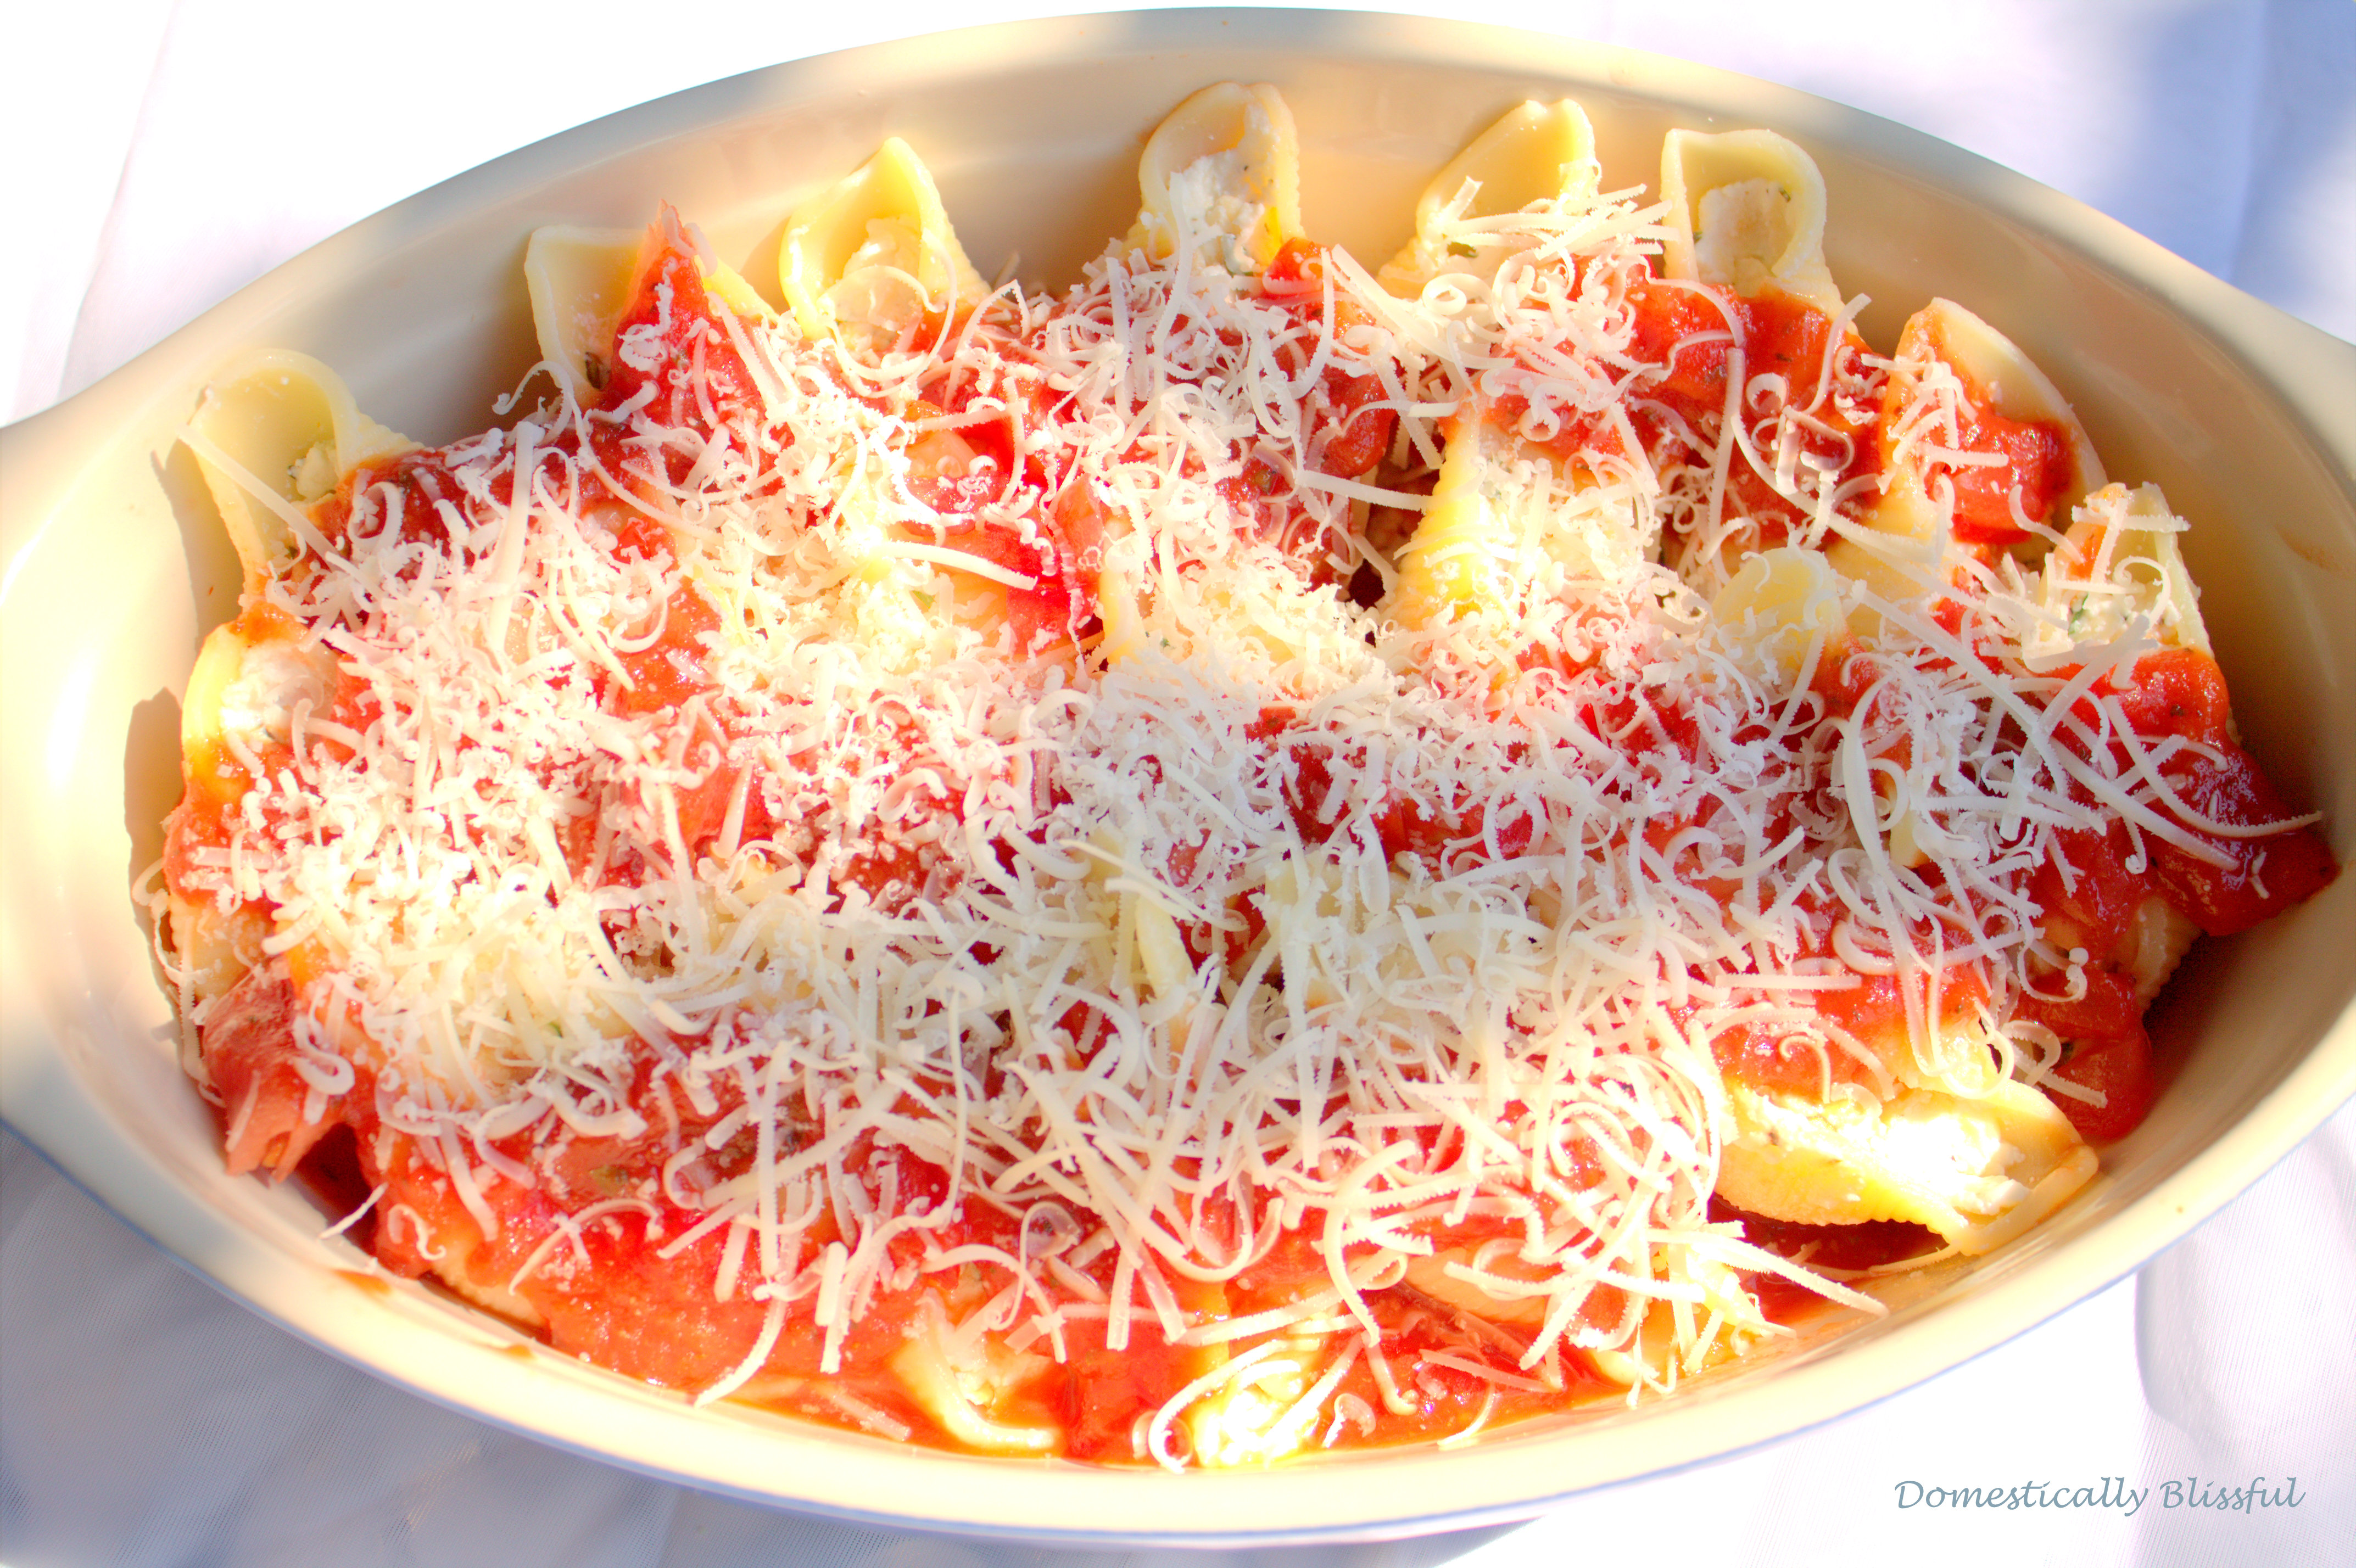 Tomato Sauce and Cheese on top of Stuffed Shells with Herbed Ricotta Cheese